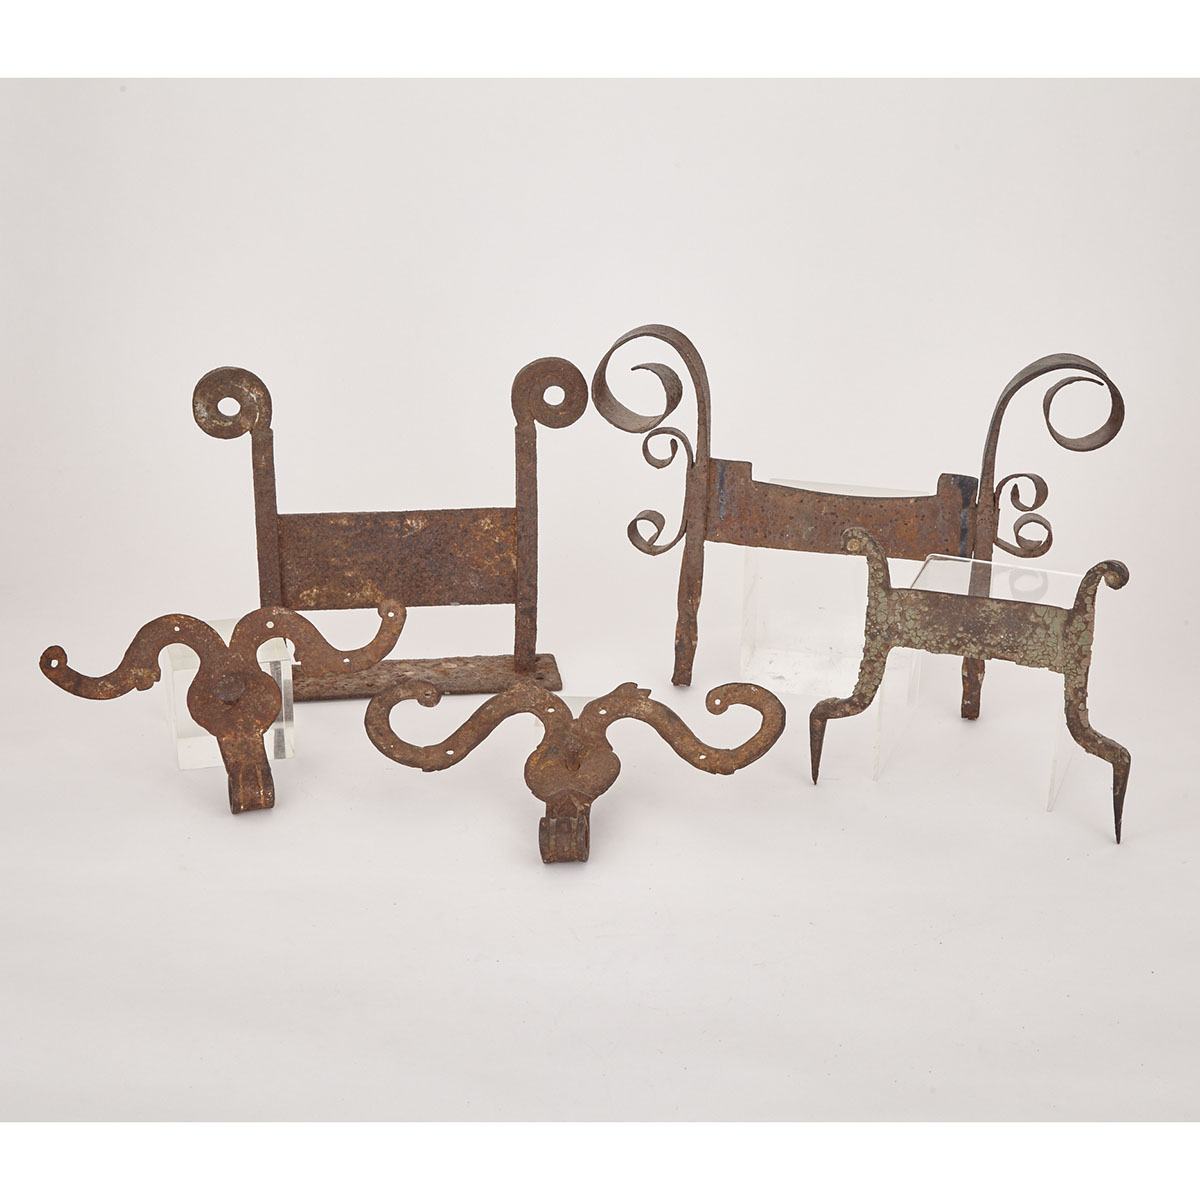 FIve Pieces Victorian Wrought Iron, 19th century